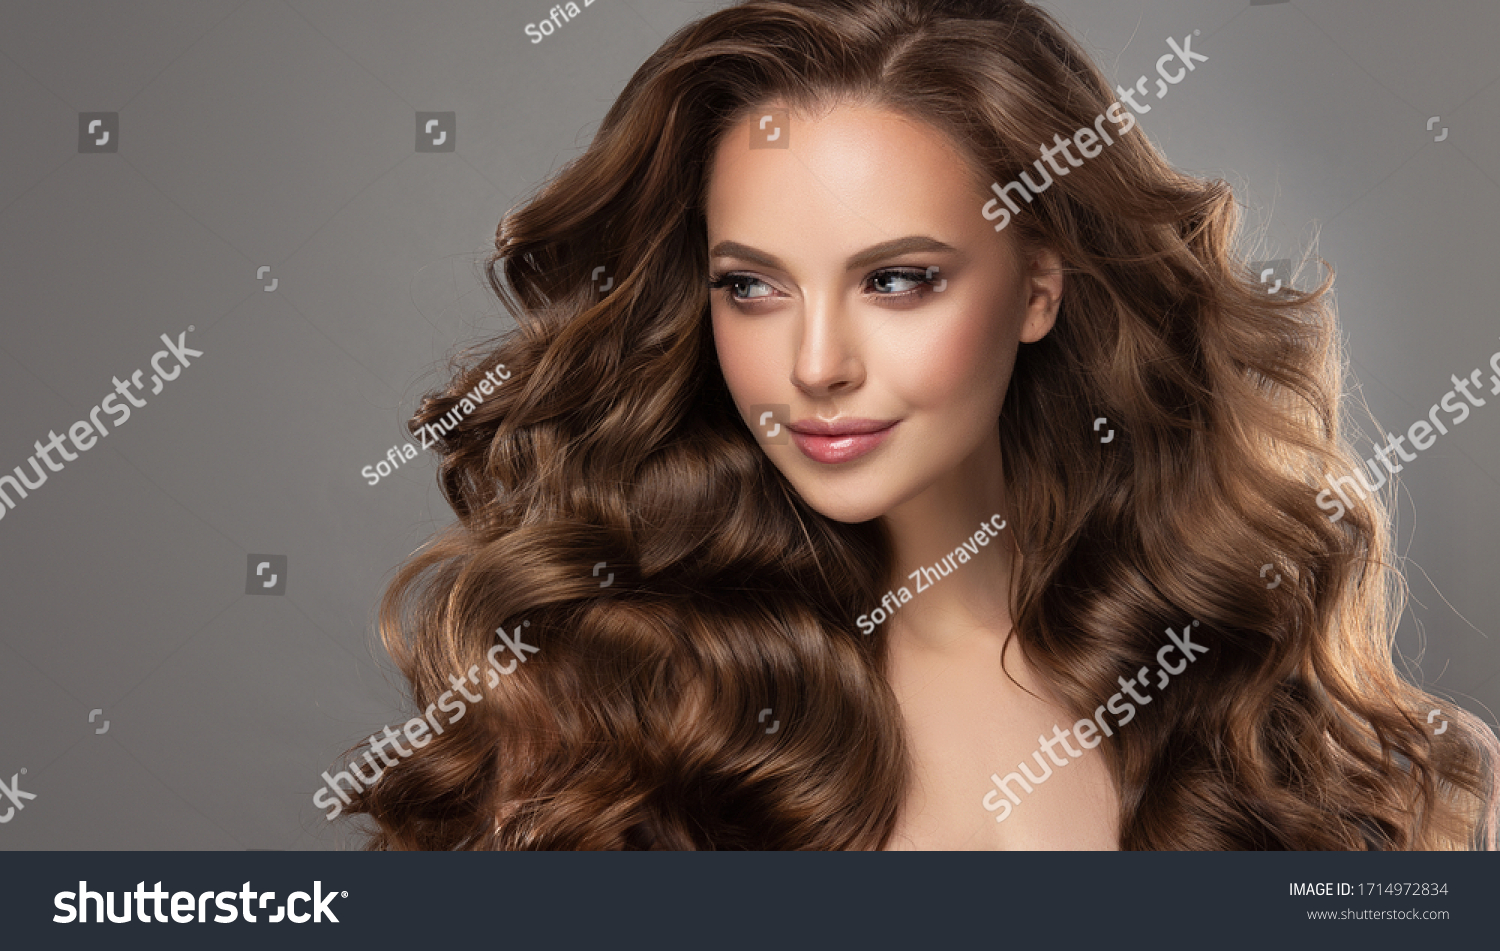 Beautiful model girl with long wavy and shiny hair . Brunette woman with curly hairstyle #1714972834